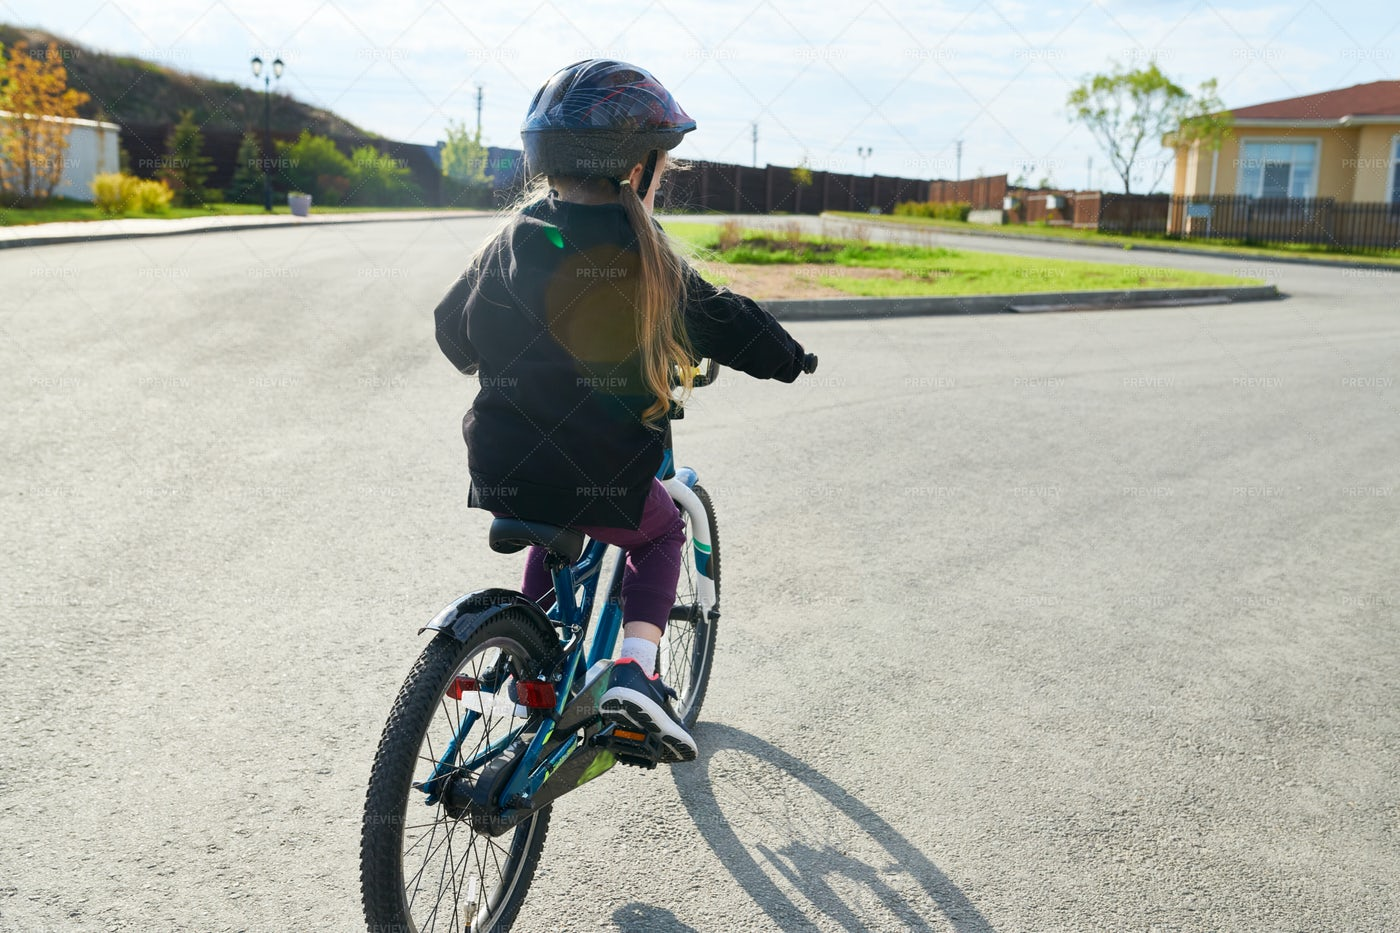 Girl Riding Bicycle In Sunlight: Stock Photos